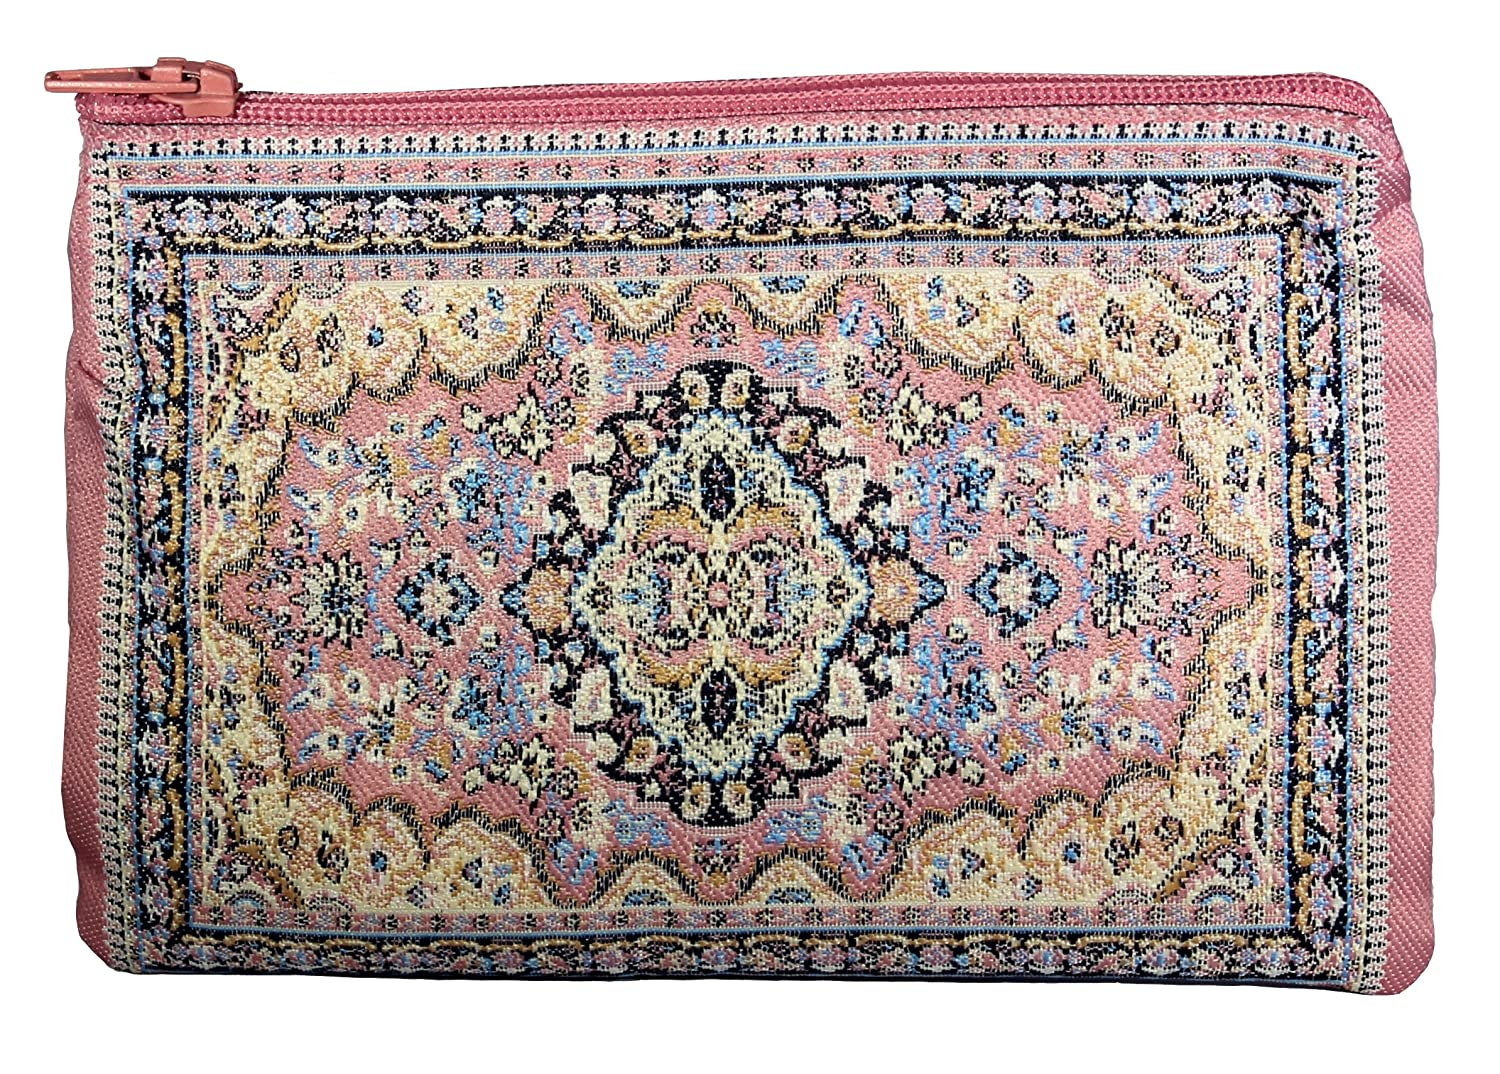 Unique Woman Coin Purse - Card Case - Floral Design - Fabric Oriental Rug (Turquoise) WovenRugs